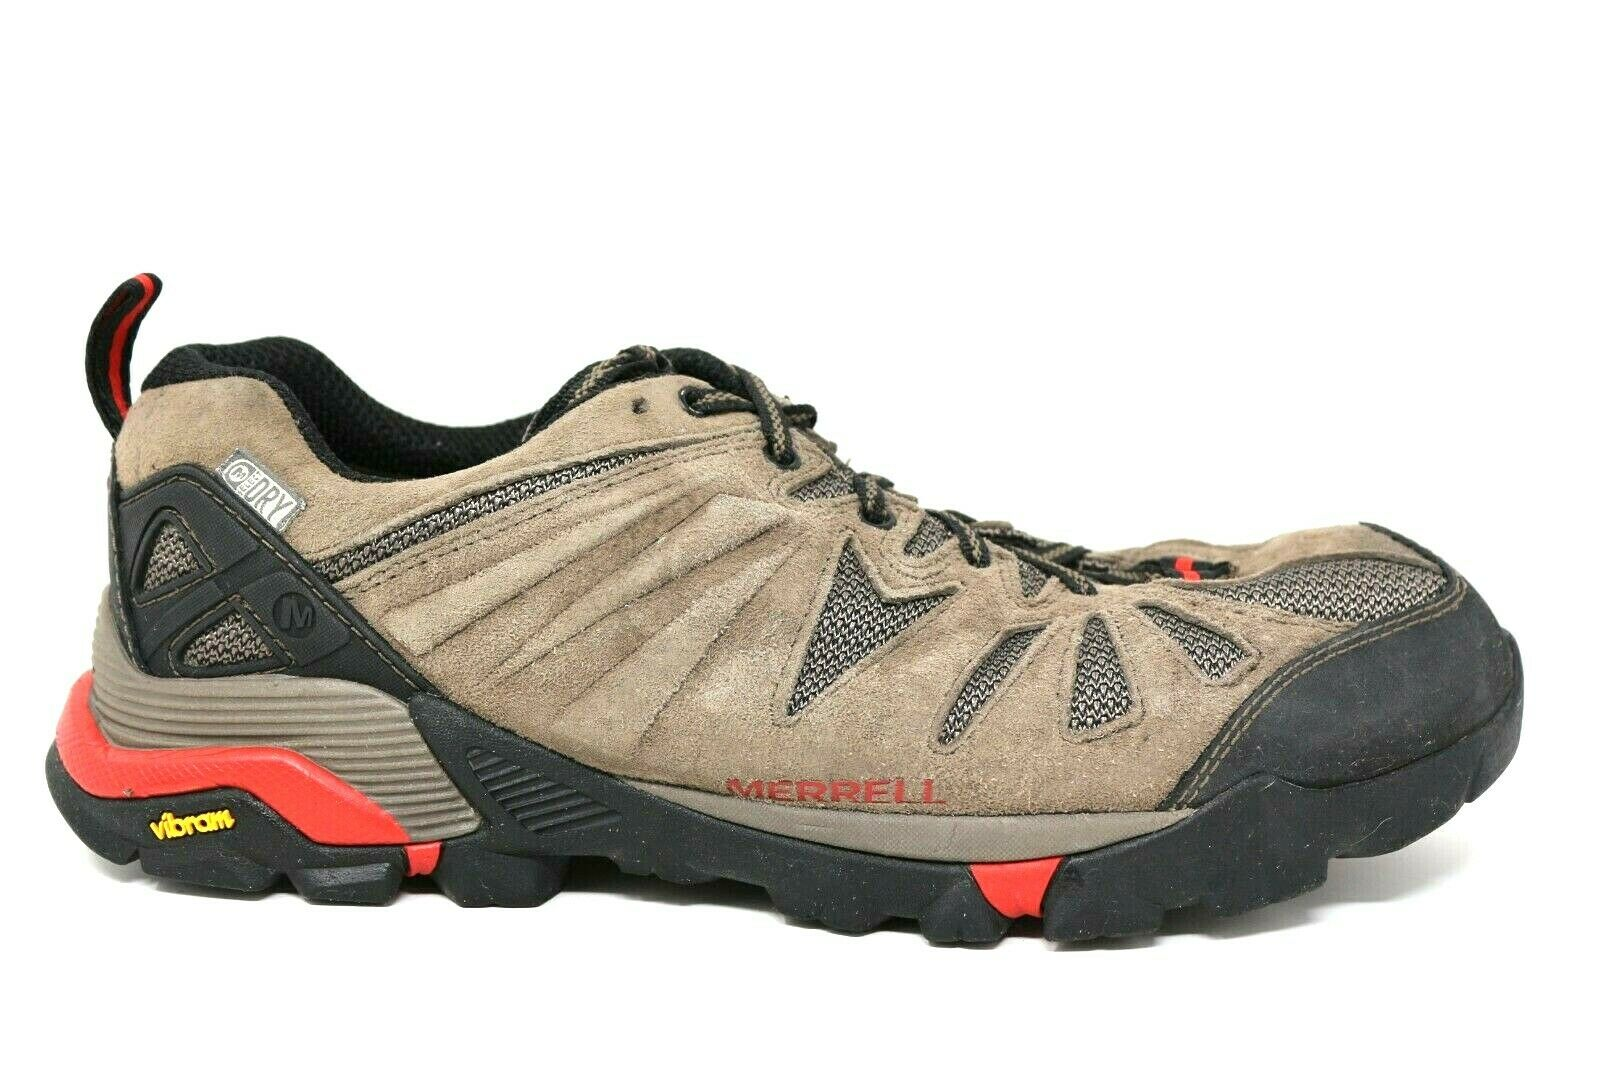 Merrell Boulder Brown Leather Low Hiking Running shoes Mens Size 9.5